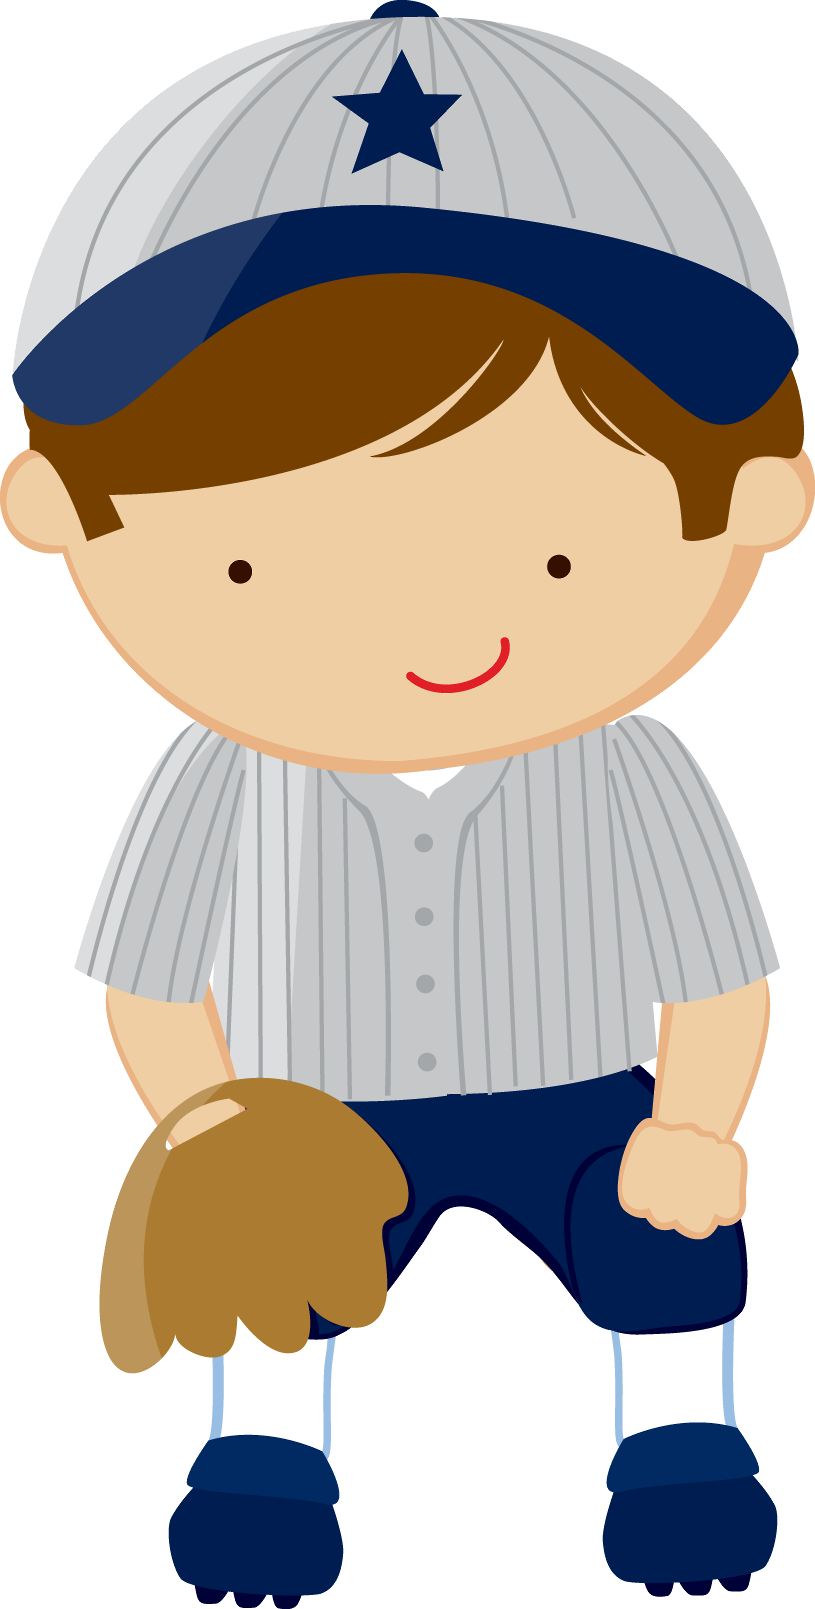 Zwd Fielder Png Baseball Theme Birthday Kids Clipart Baby Boy Baseball